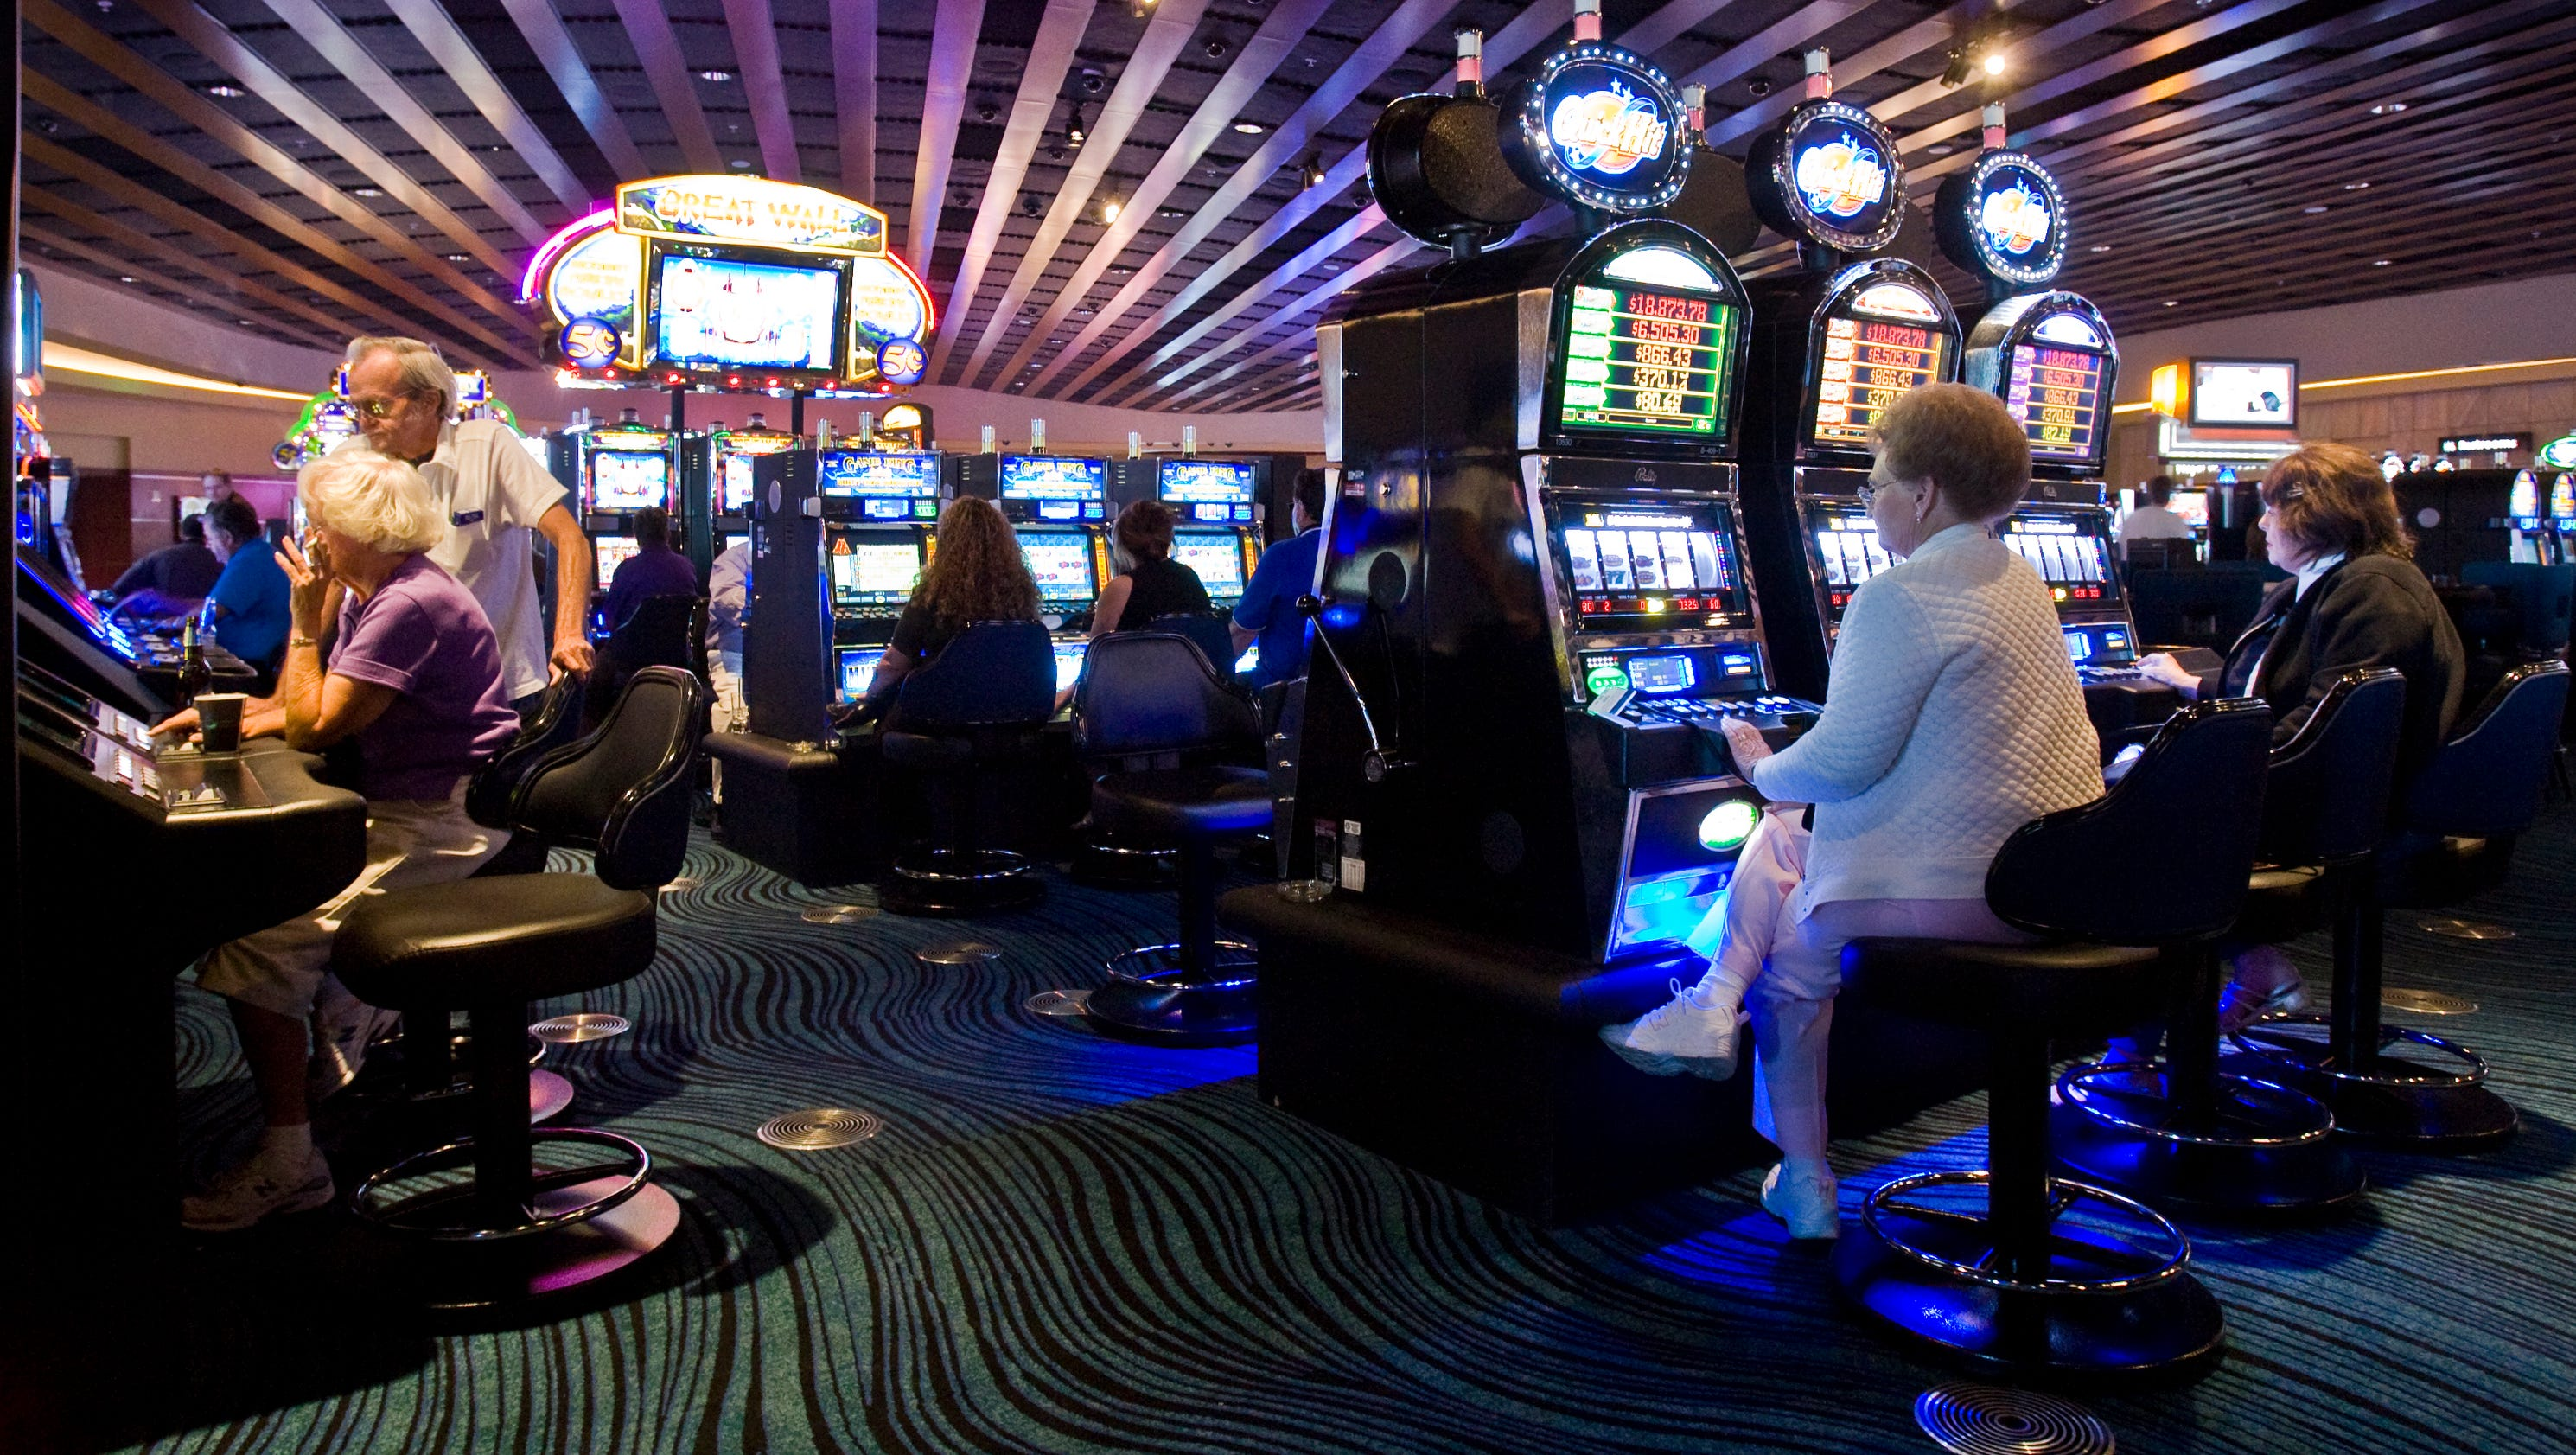 Ten Of The Best Casinos In Phoenix And Arizona To Gamble